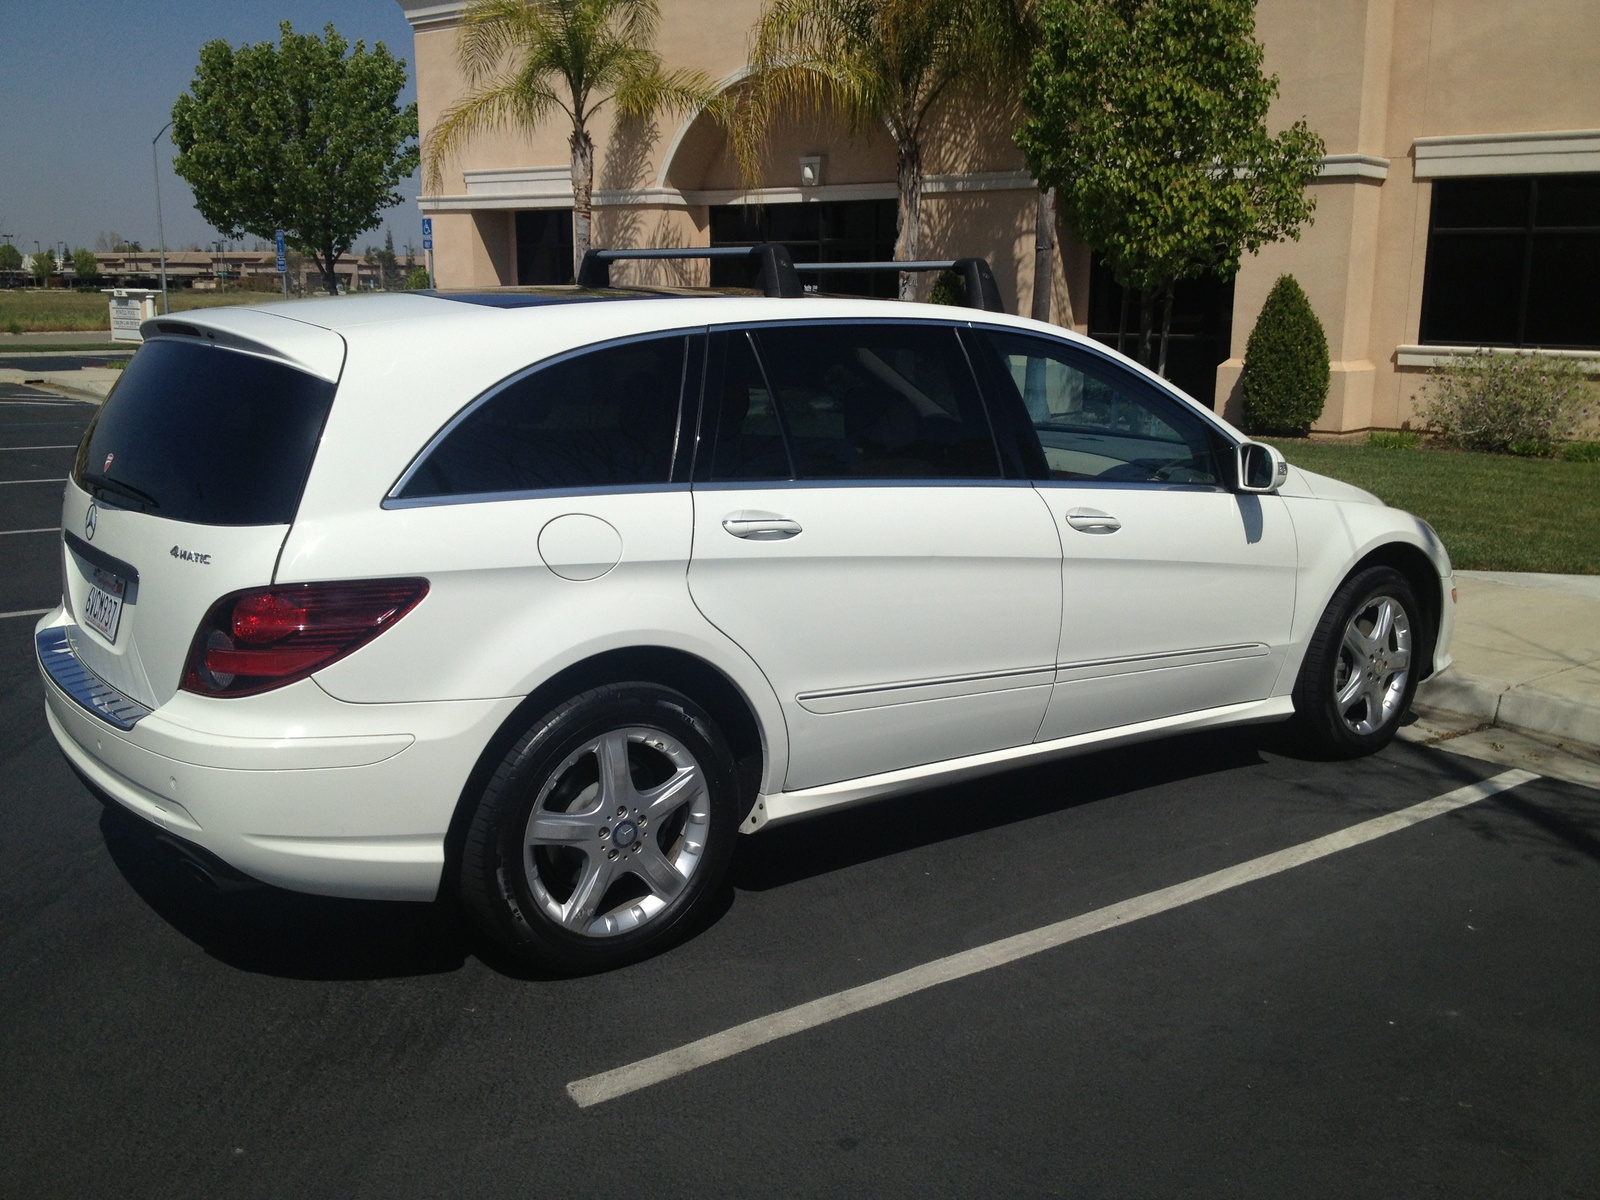 2008 mercedes benz r class exterior pictures cargurus for R350 mercedes benz